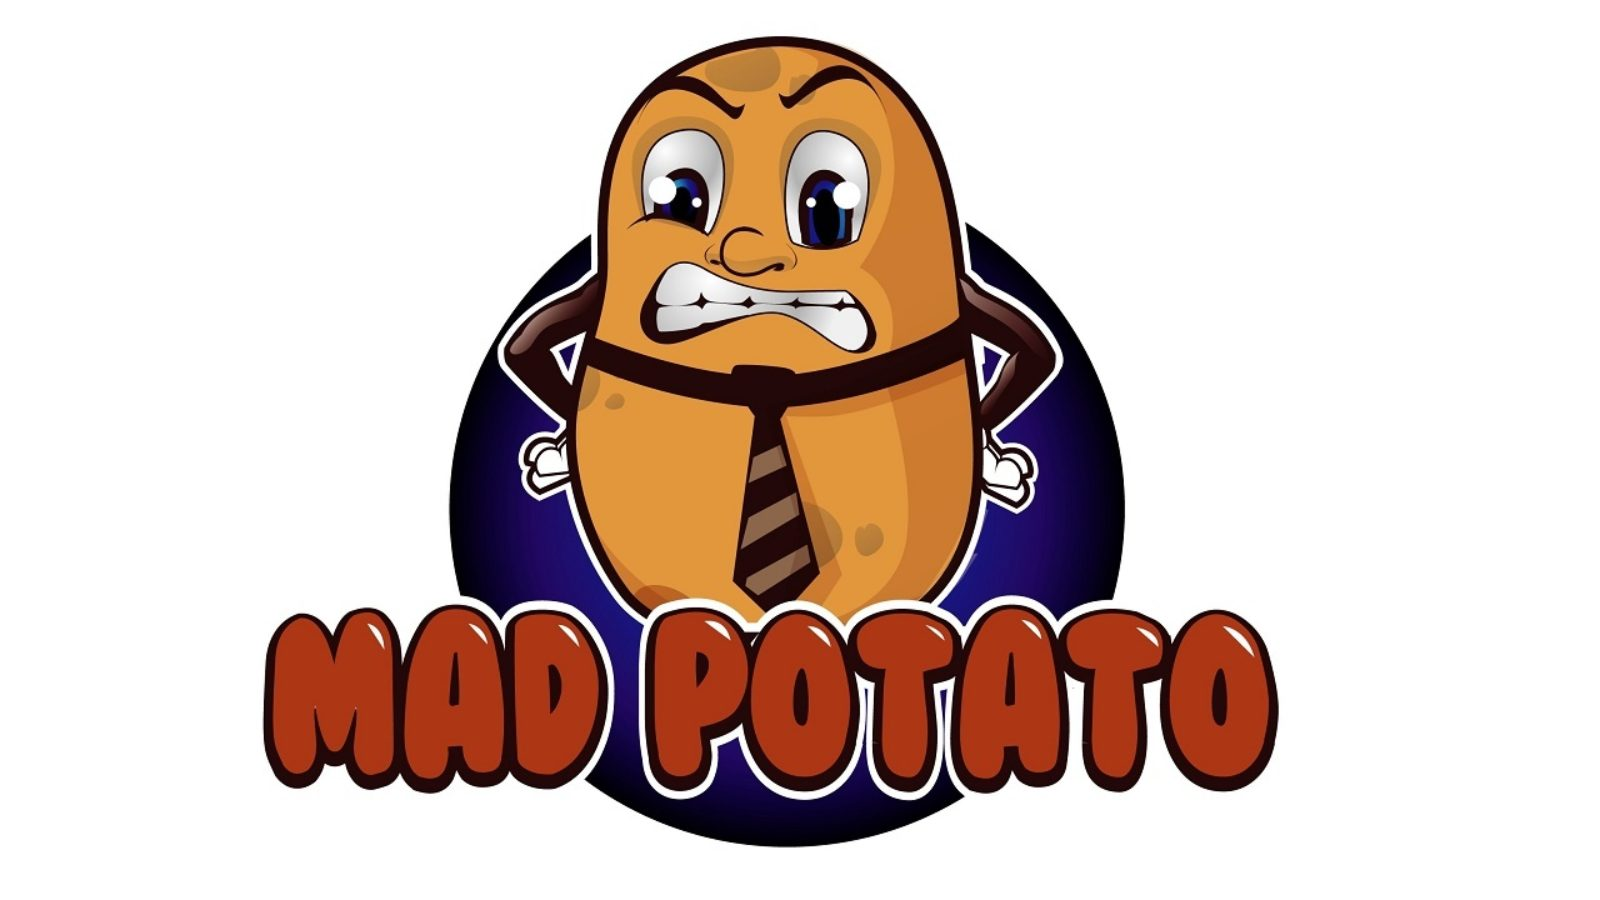 Mad Potato: Reducing environmental impact while supporting local products